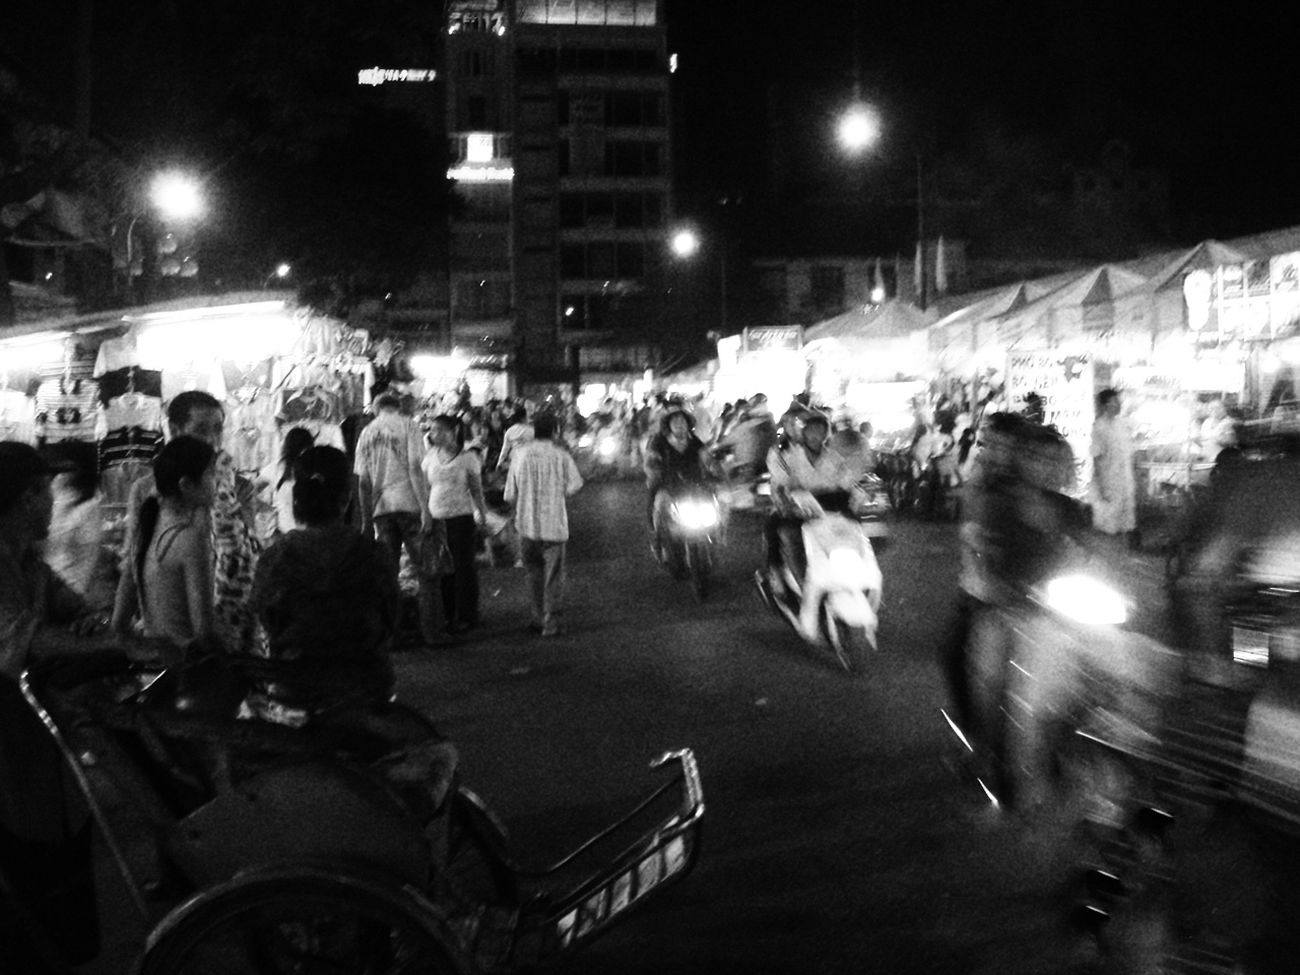 Night Nightlife World Traveller Cityscape Street Photography Travel Photography City Life EyeEm Best Shots Monochrome_Photography Monocrome Photography Vietnam Street View Vietnam Night Market